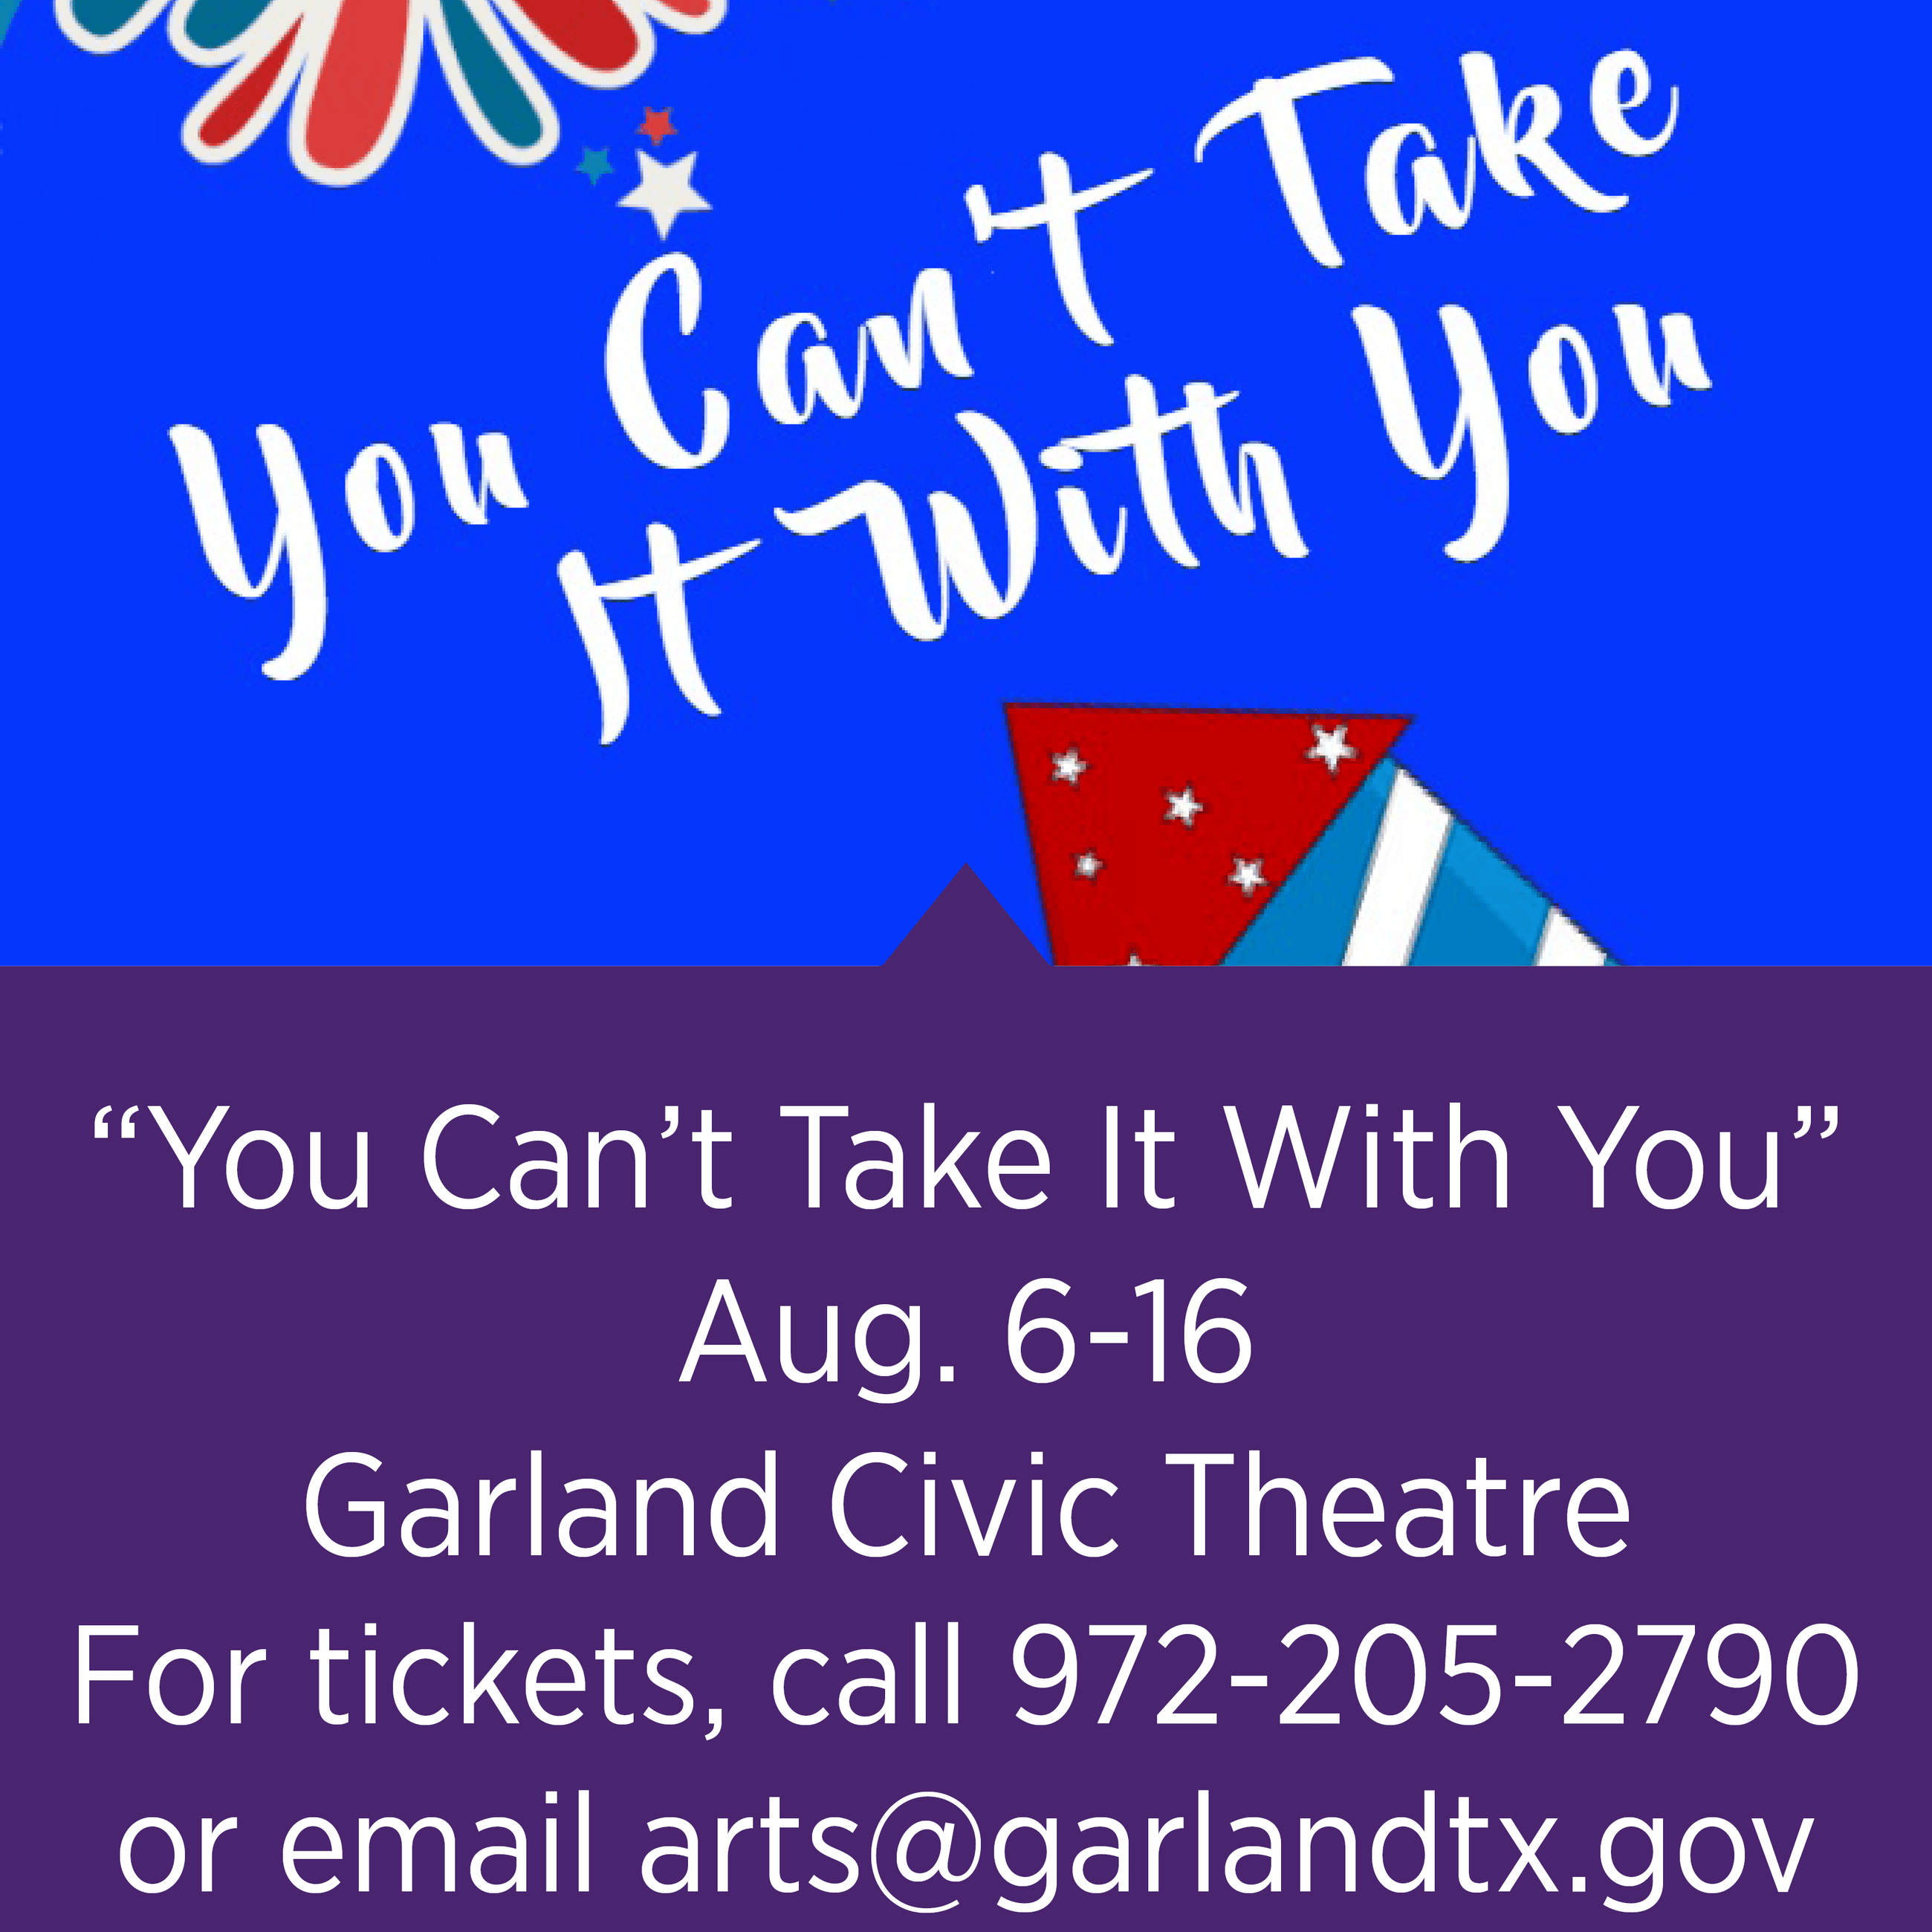 """You Can't Take It With You"" - For tickets, call 972-205-2790 or email arts@garlandtx.gov"